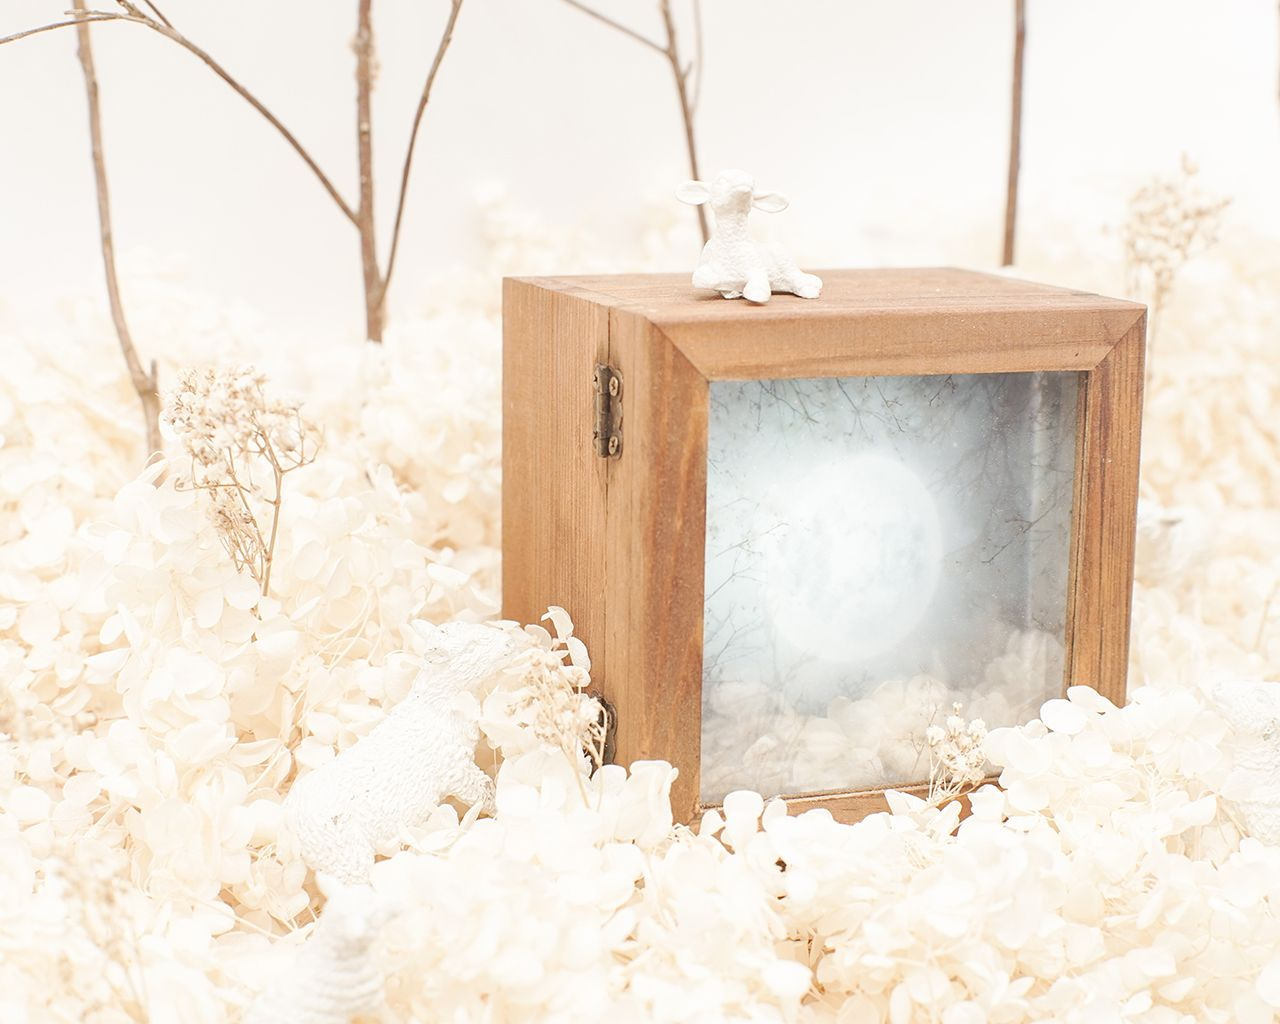 (SOLD OUT) 月蒝夜燈工作坊 Full Moon Night Lamp Workshop